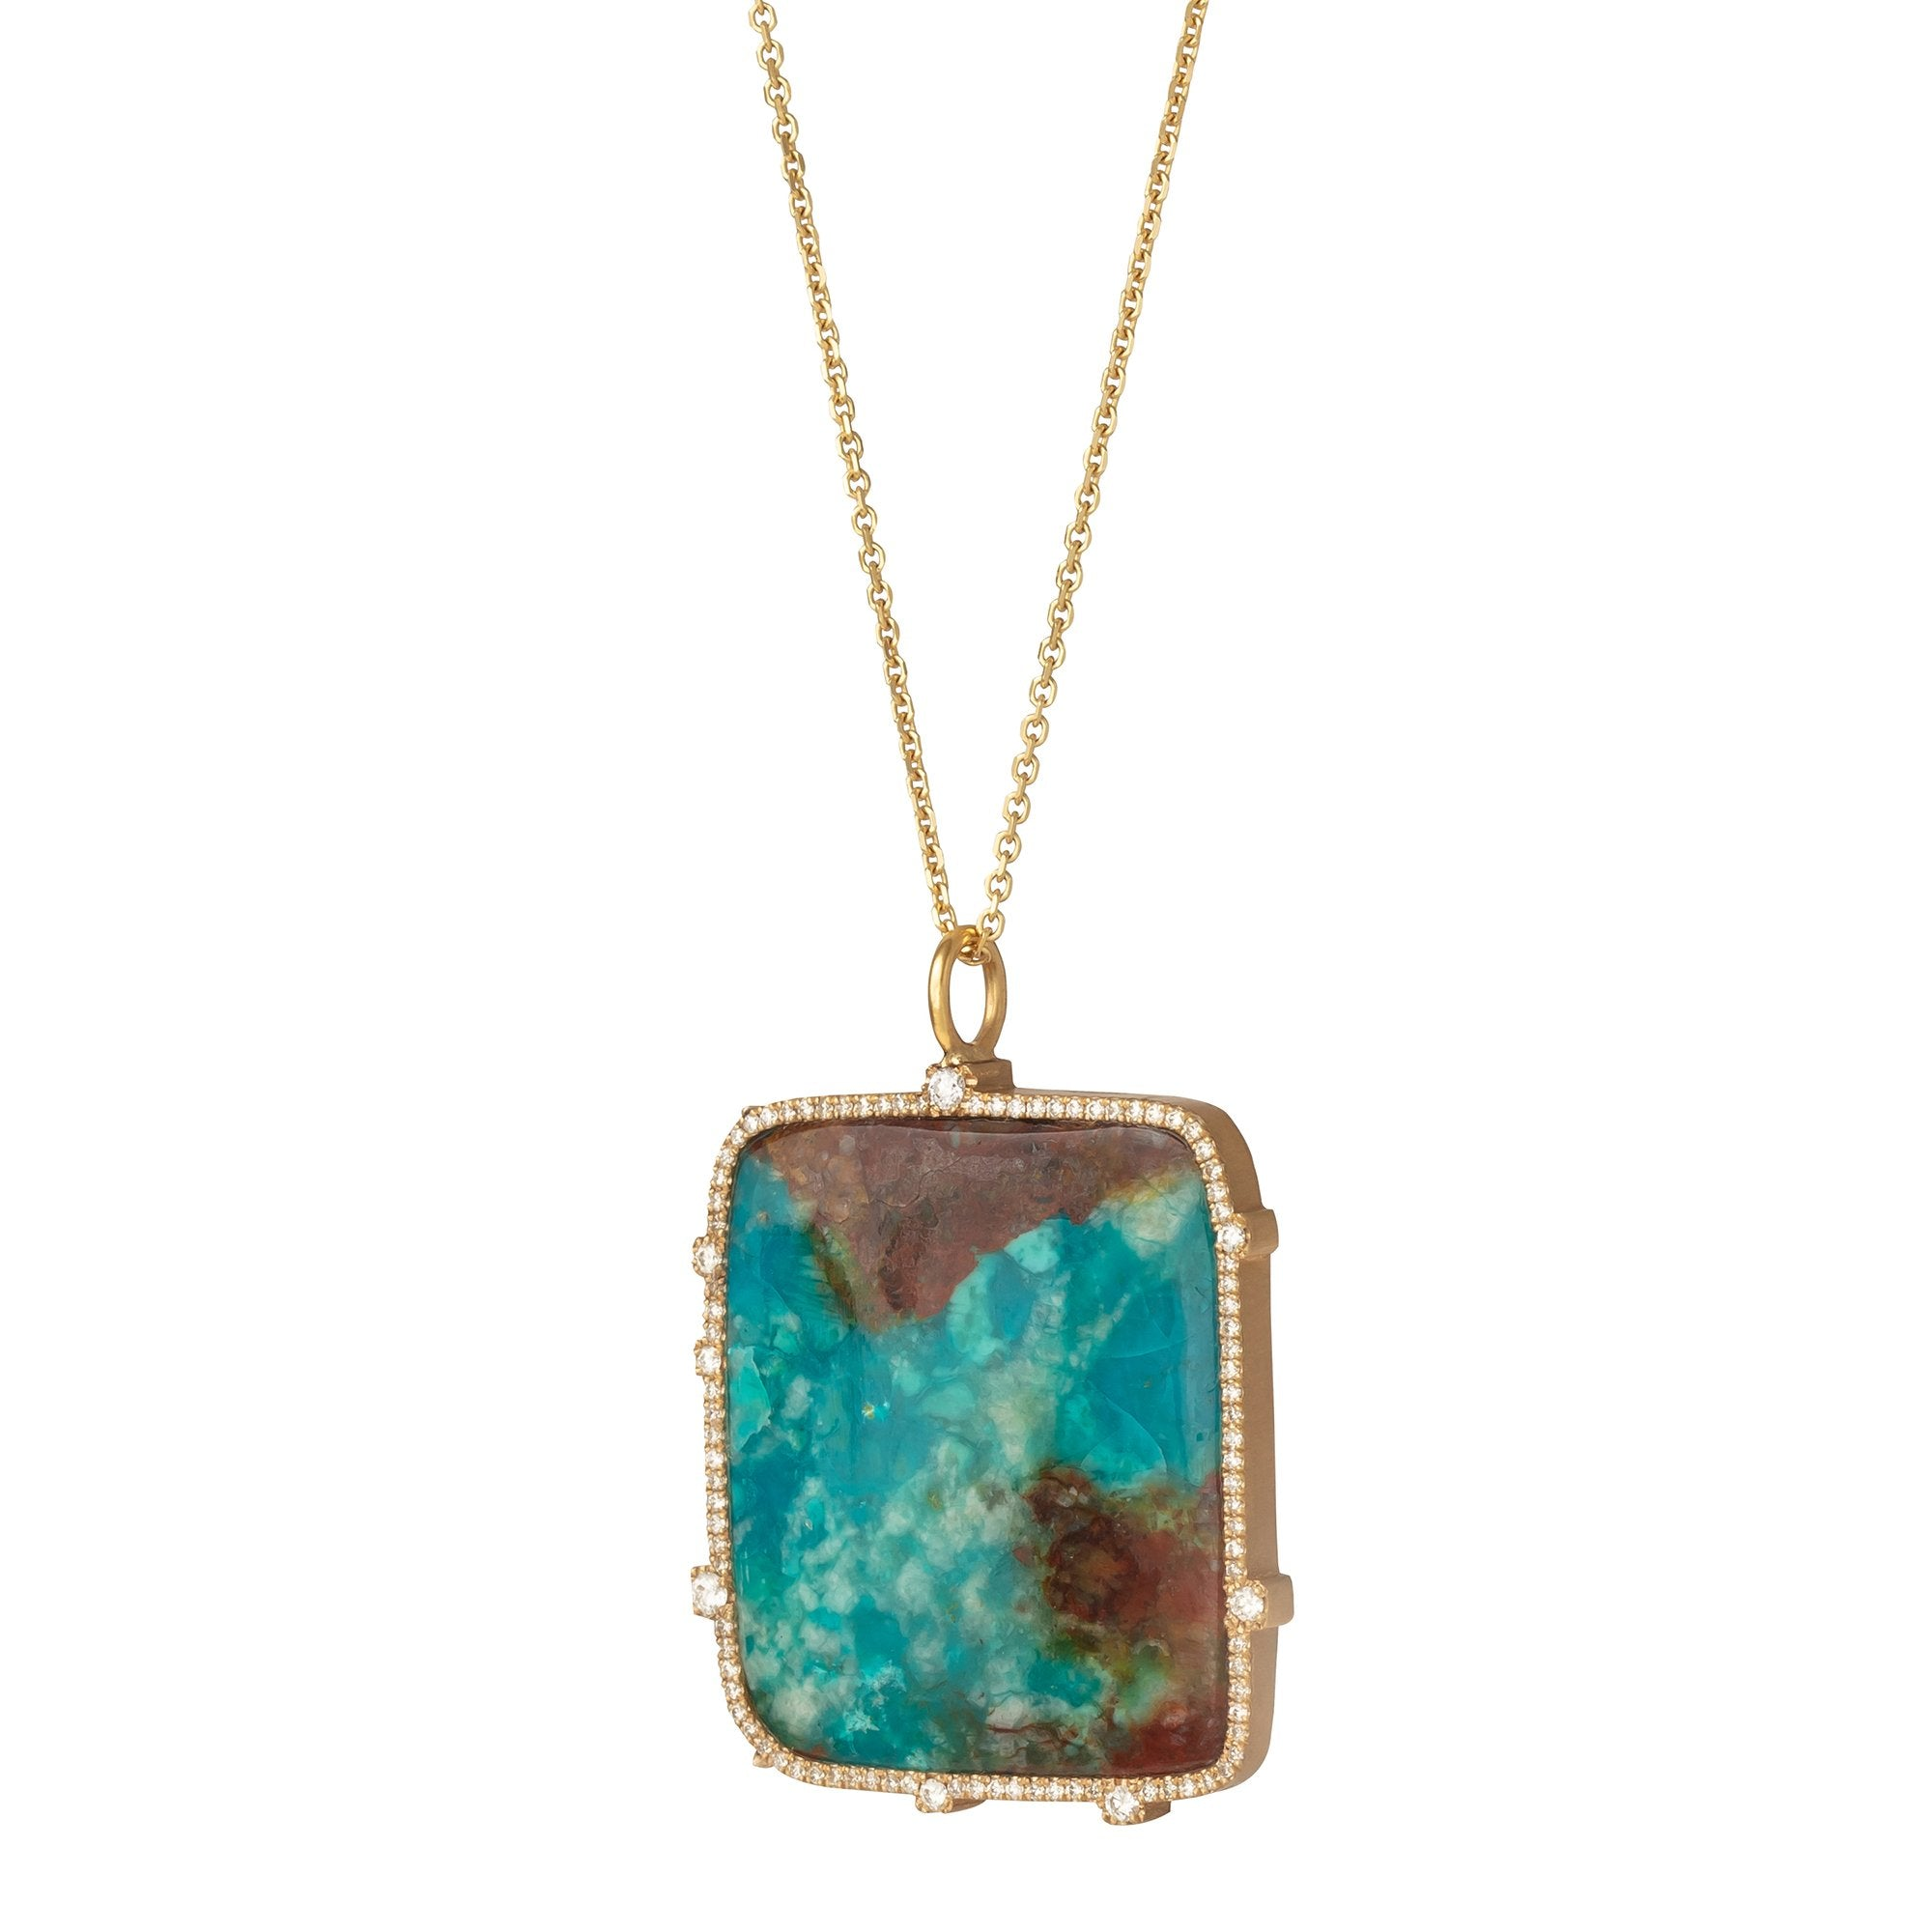 Chrysocolla and Diamond Pendant Necklace - Marisa Klass - Necklaces | Broken English Jewelry